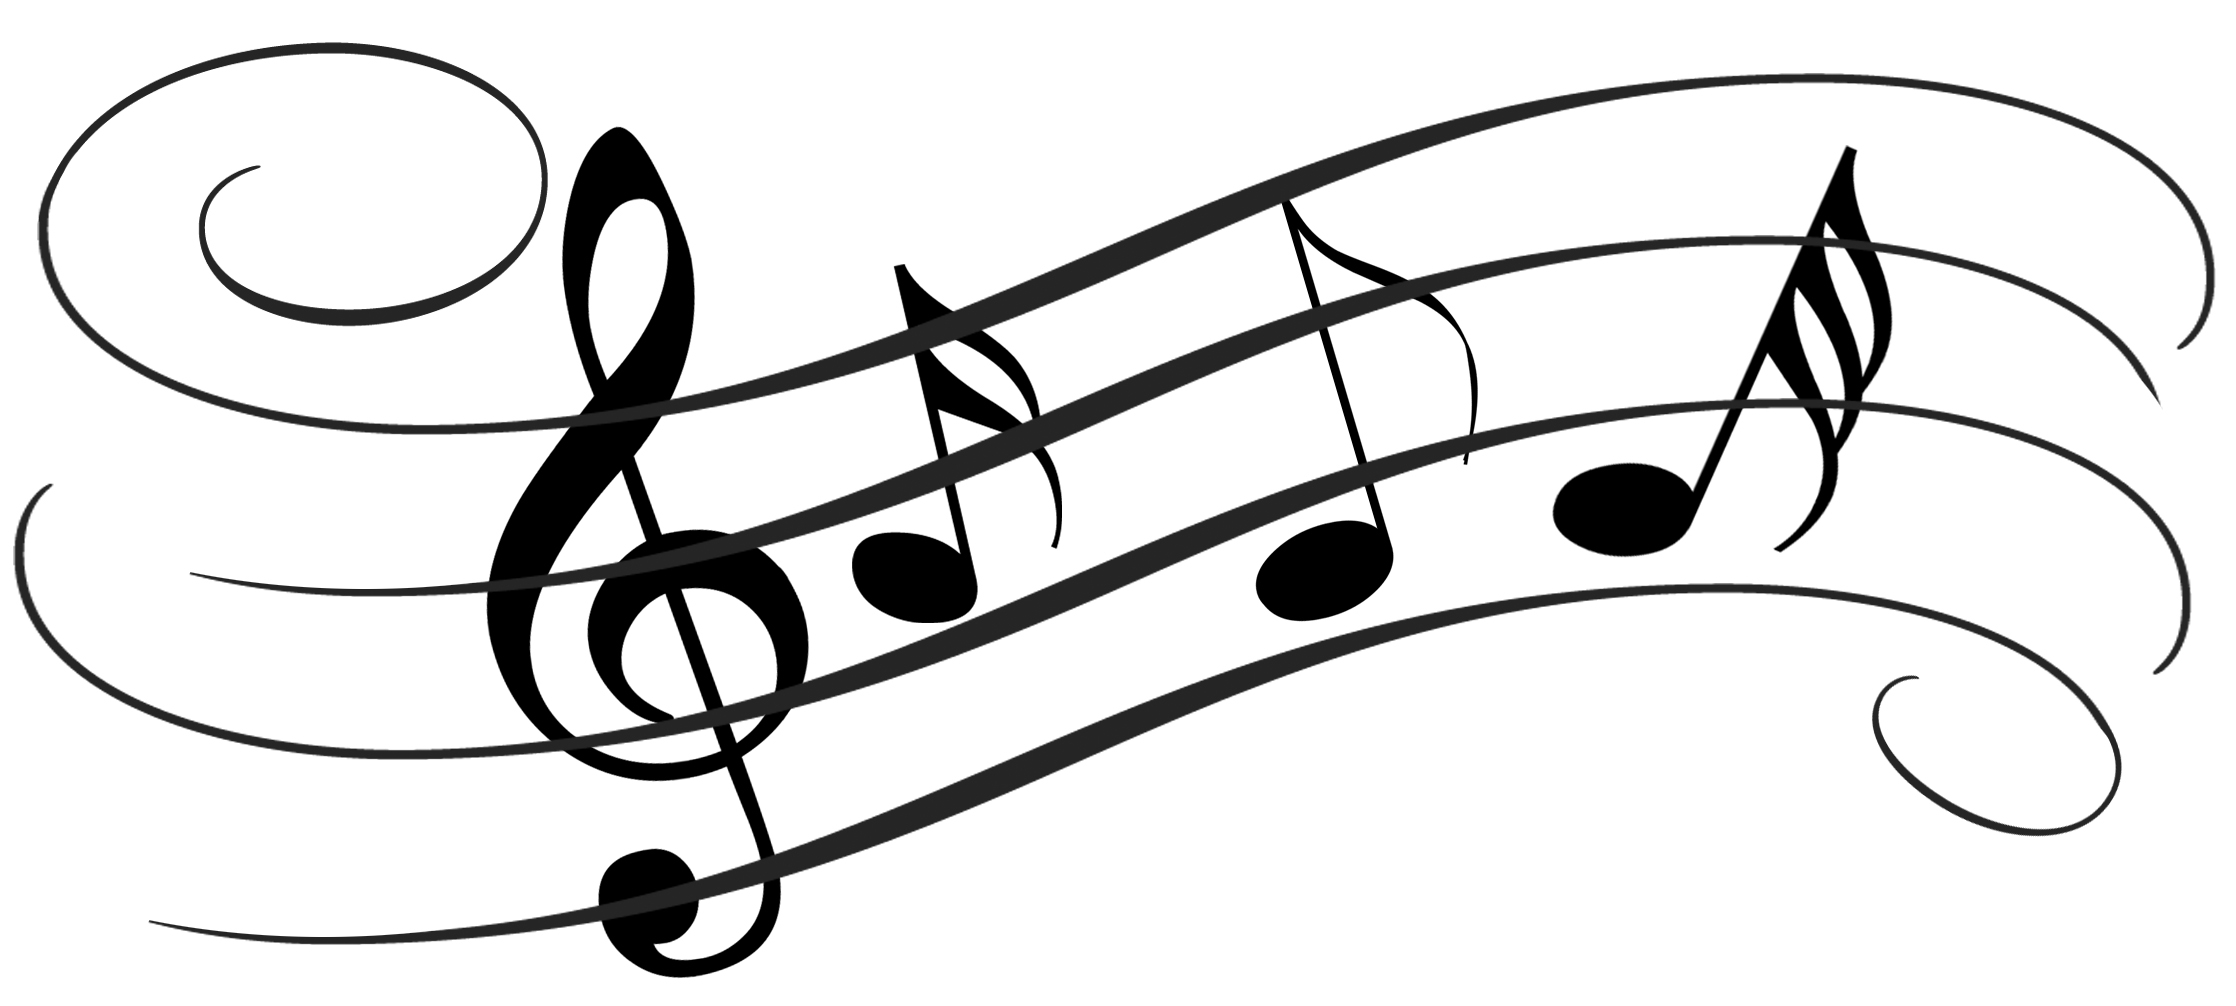 Music Notes Black And White Musical Instruments Black And